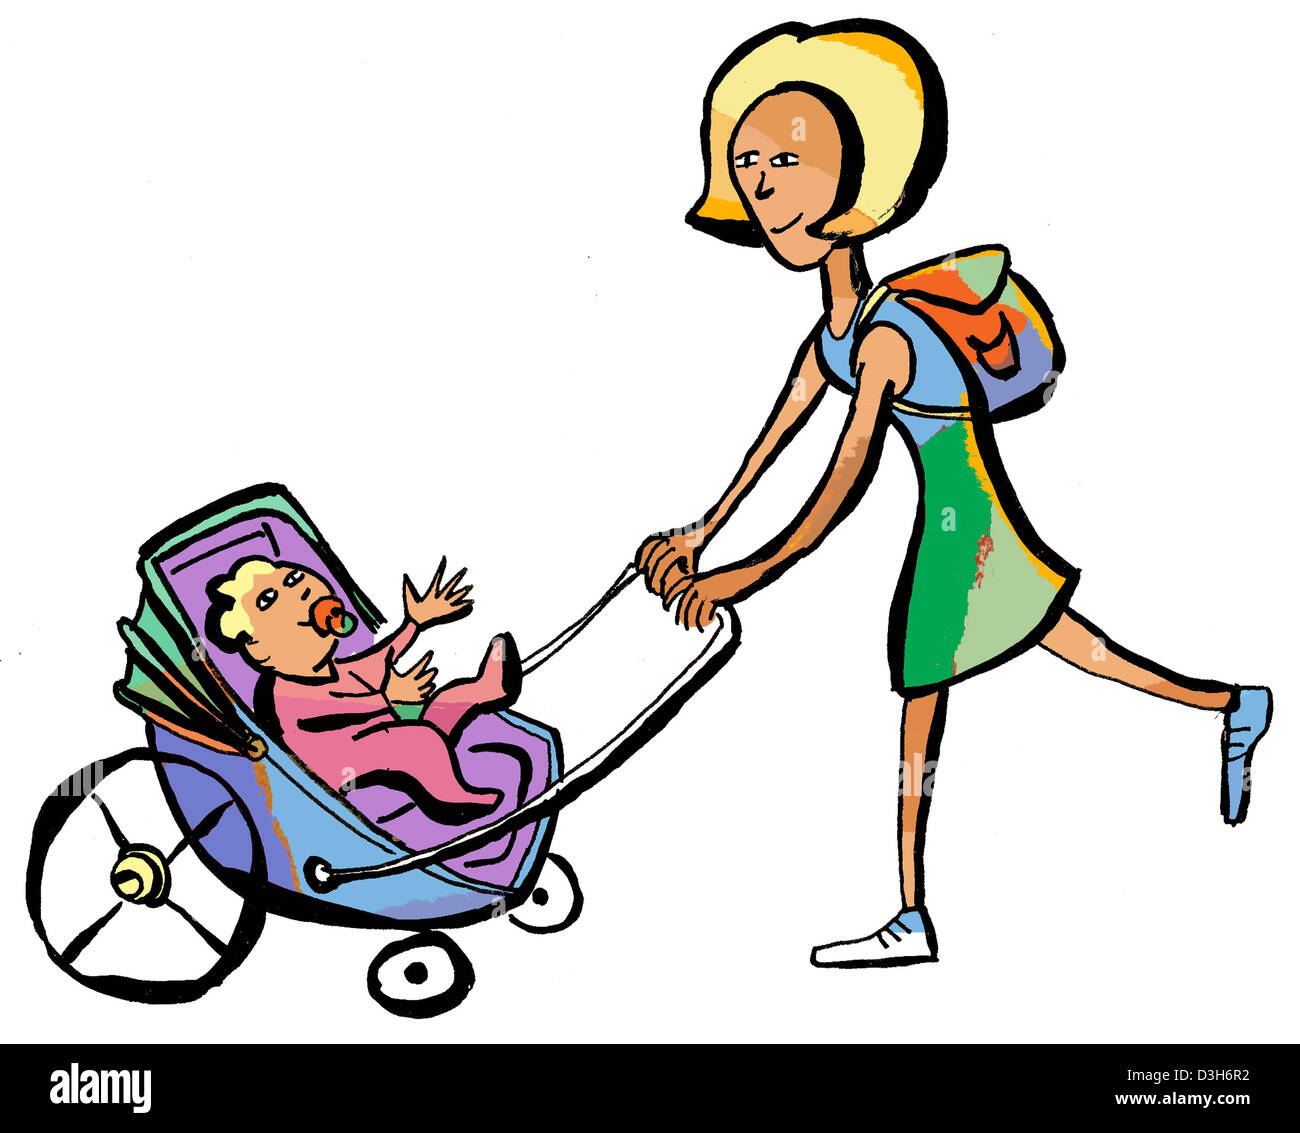 TRANSPORTING AN INFANT - Stock Image